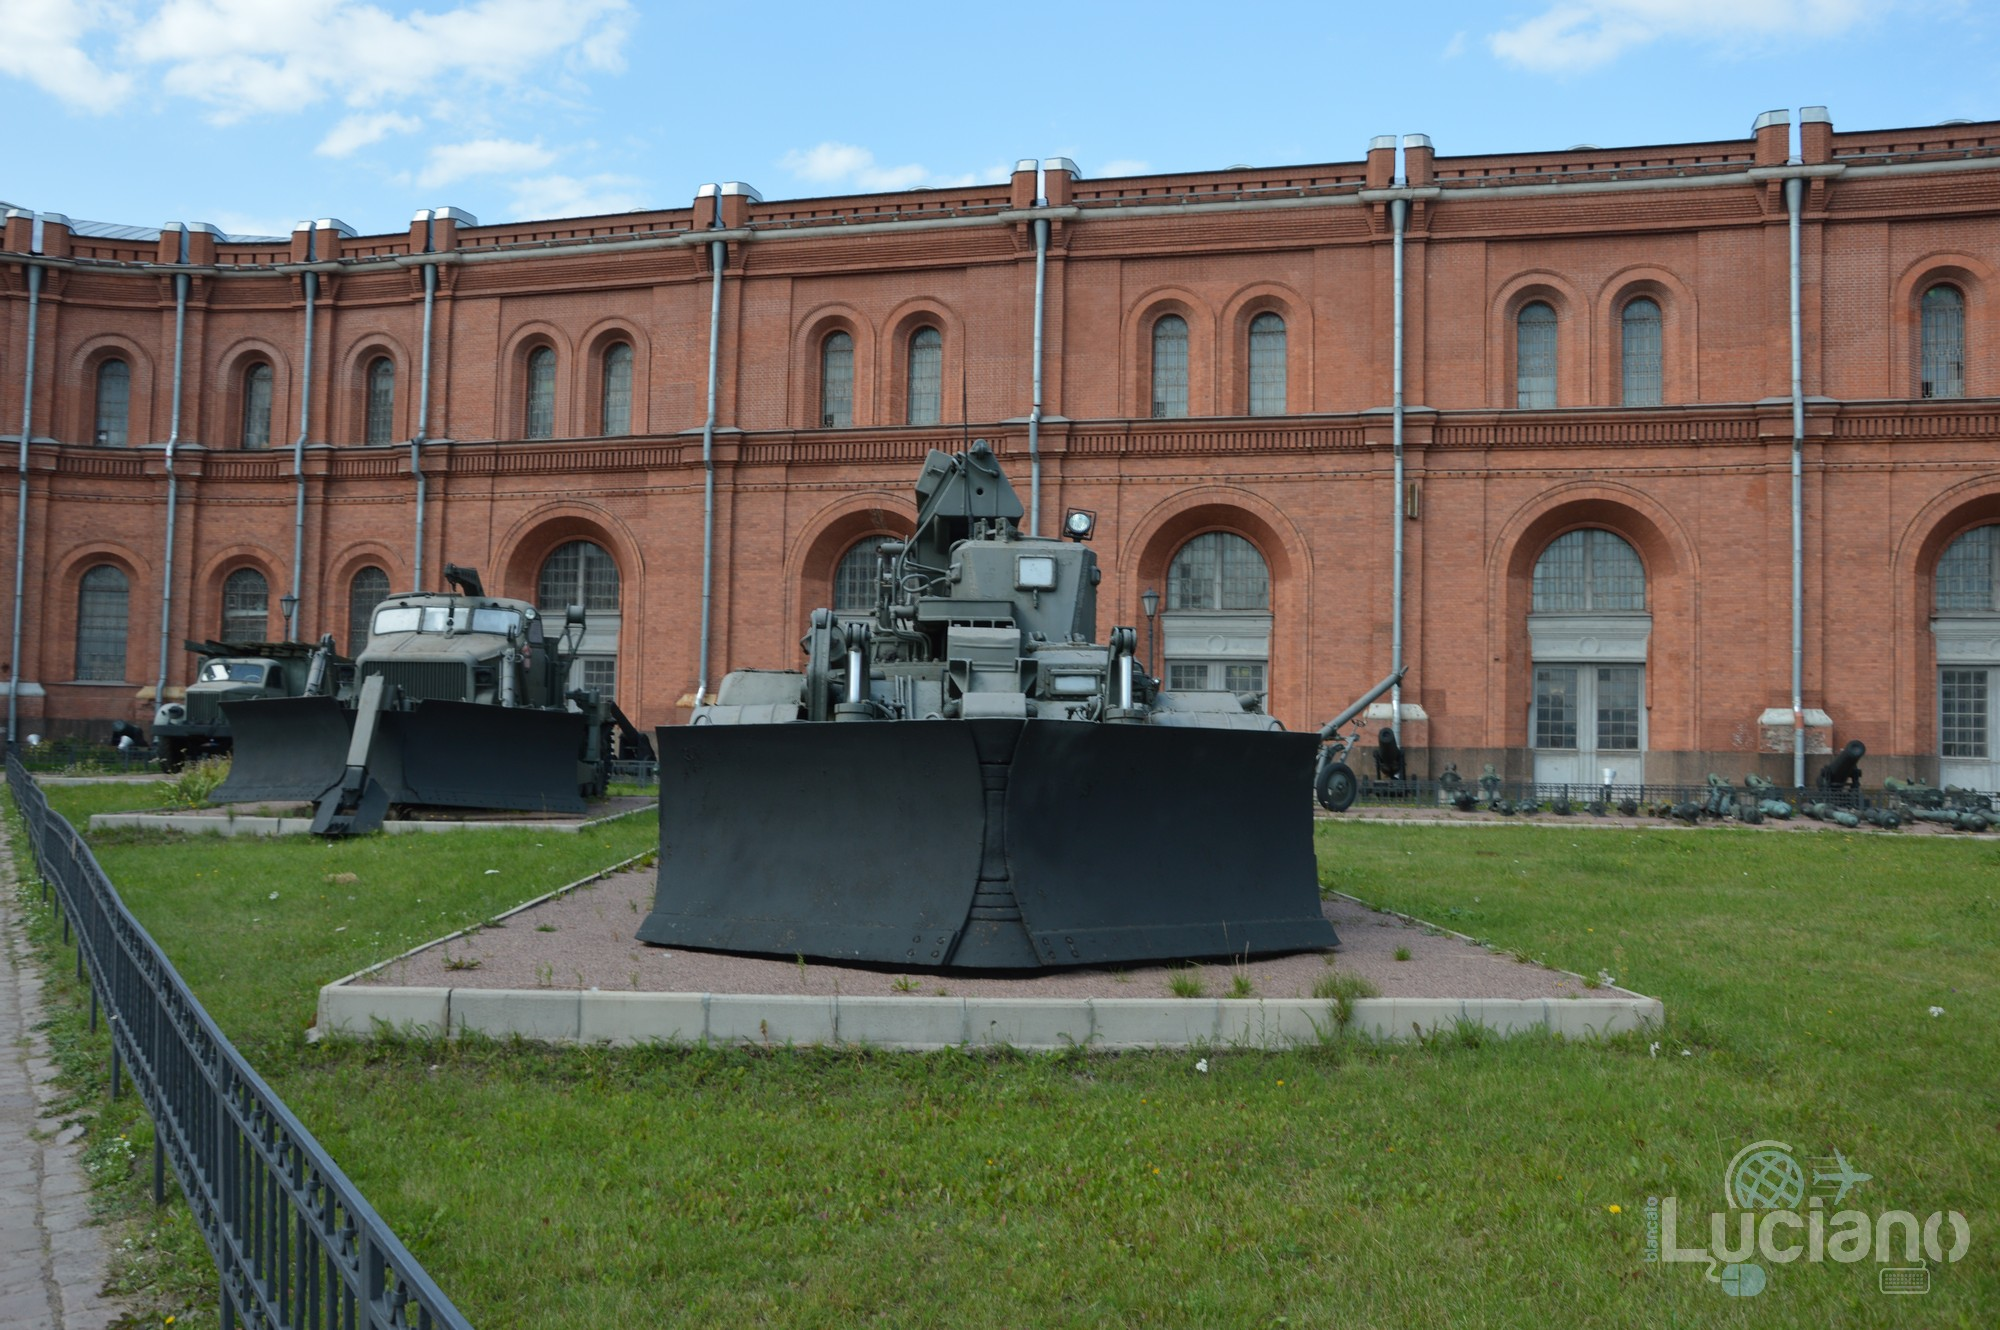 Military-Historical-Museum-of-Artillery-Engineer-and-Signal-Corps-St-Petersburg-Russia-Luciano-Blancato- (81)